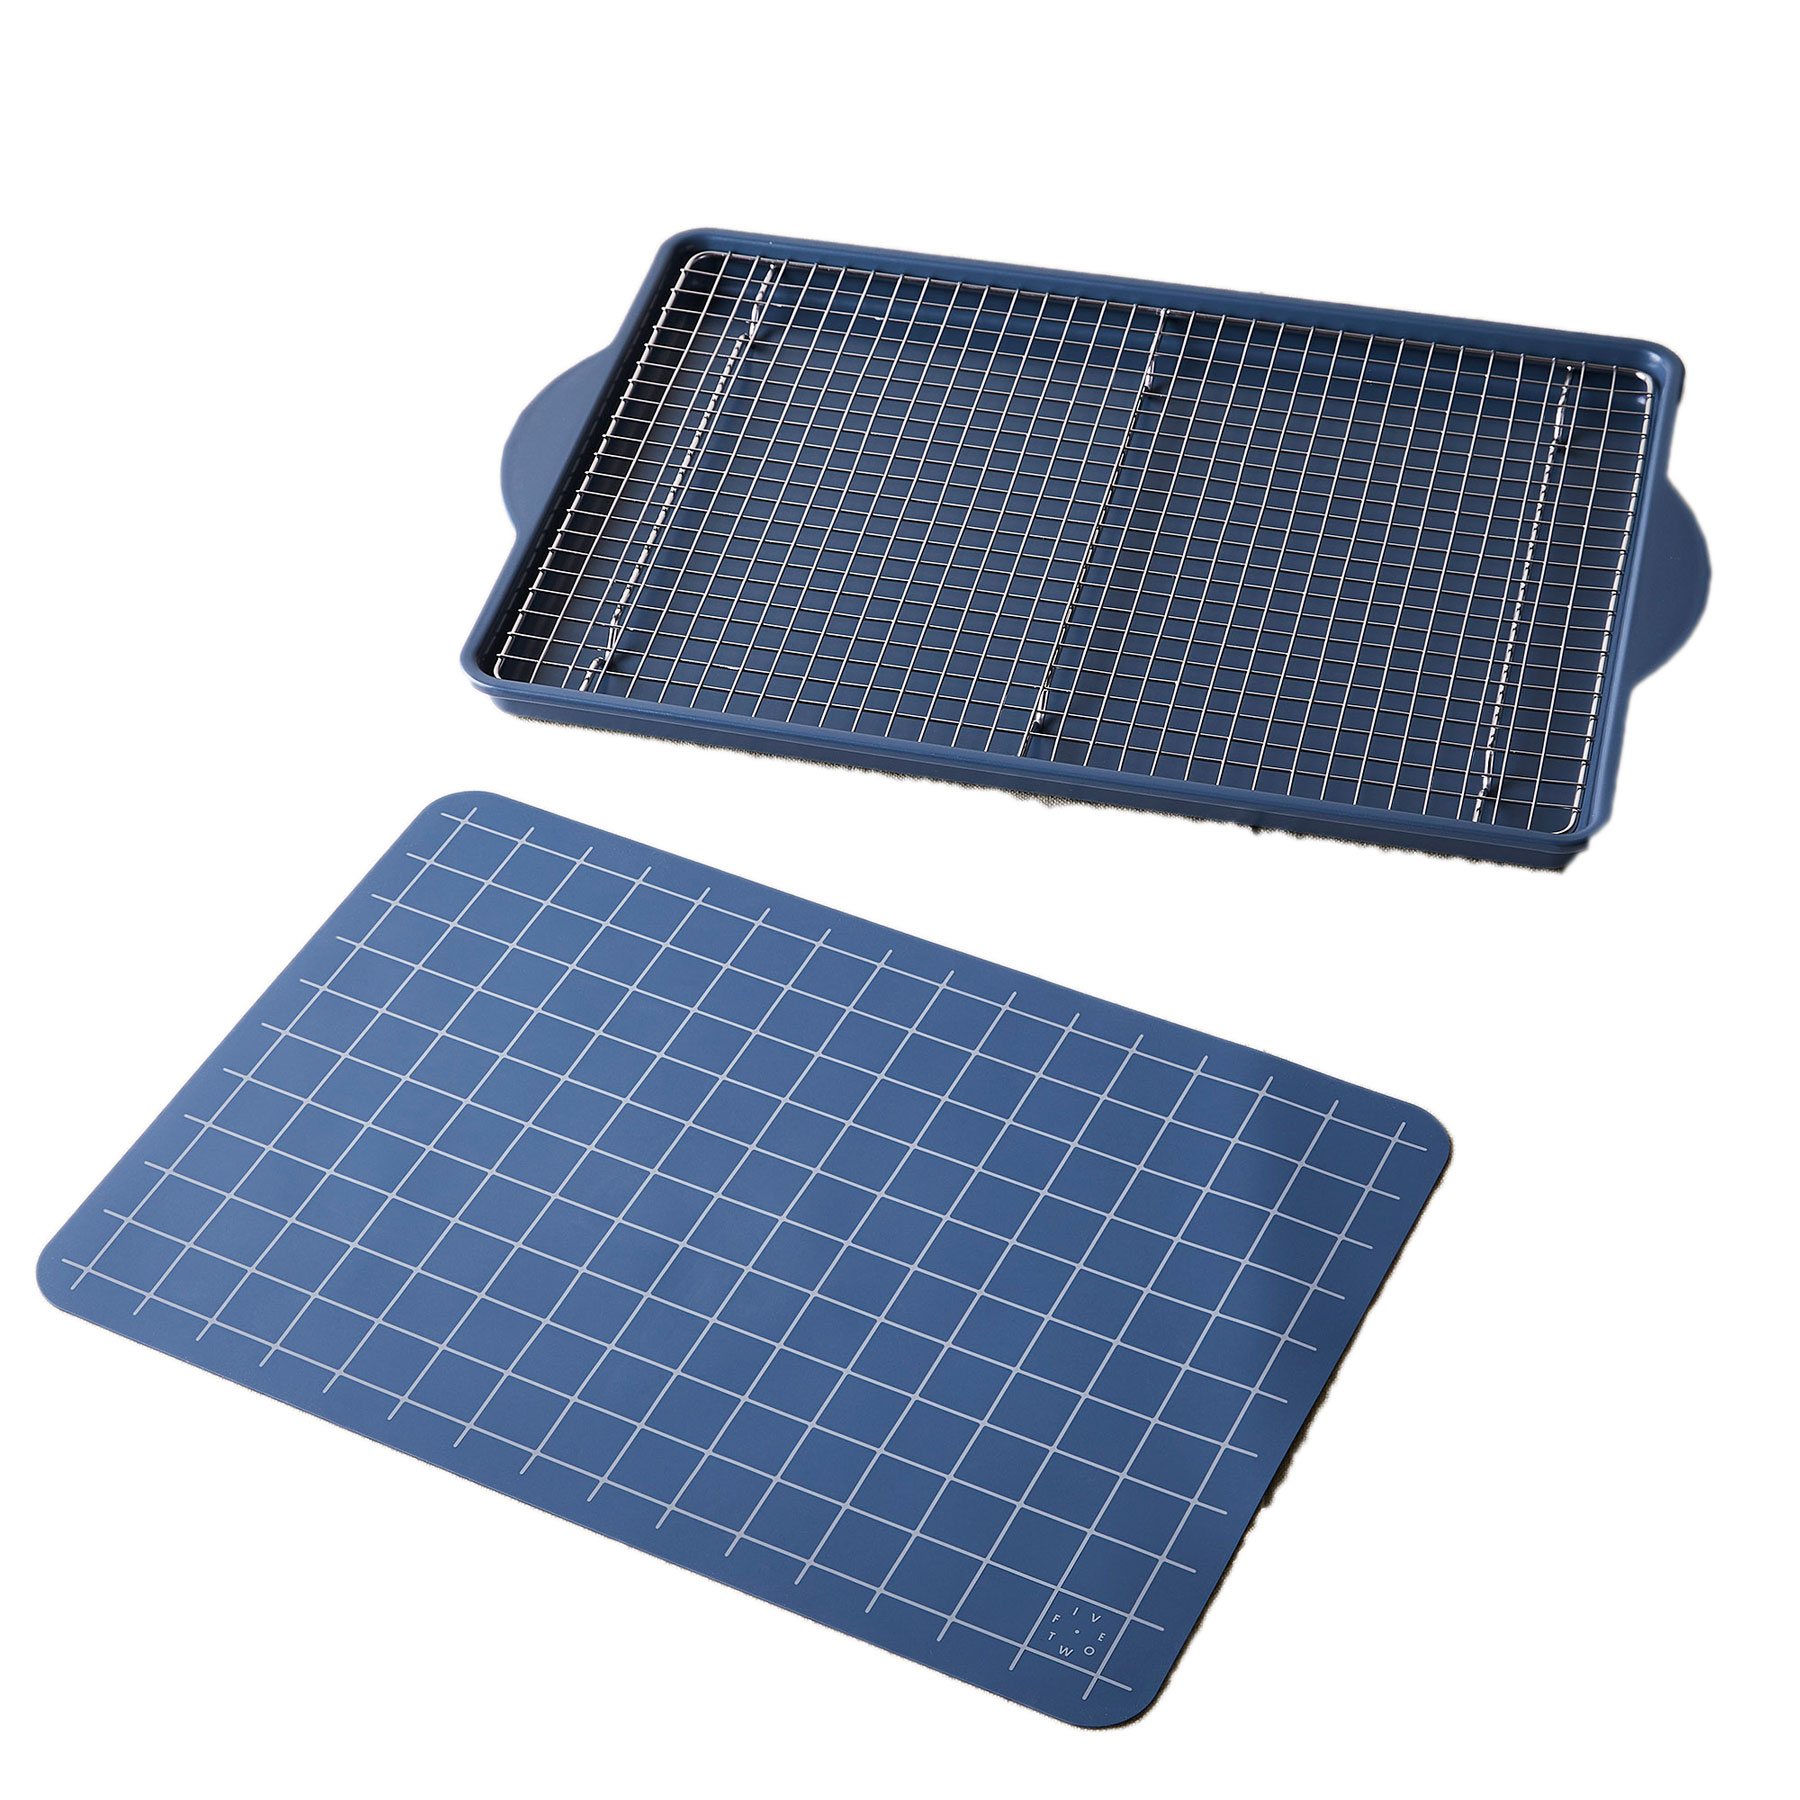 6 Clever Items (11/27/20) - Five Two Essential Sheet Pan